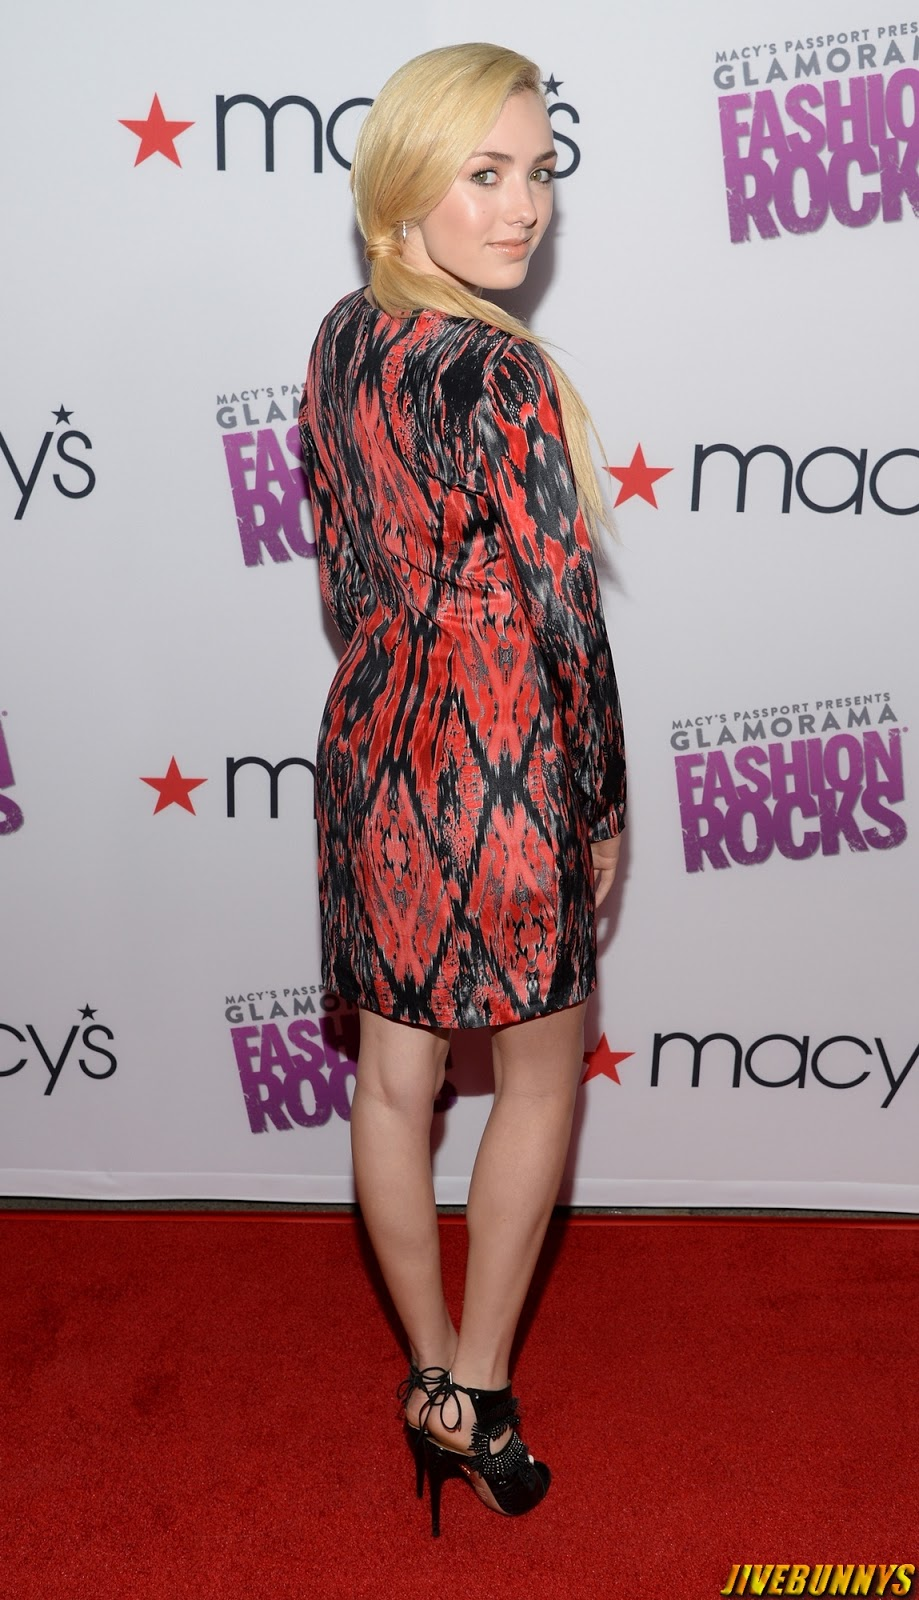 Peyton R List - Glamorama Fashion Rocks event in LA 09/09/14